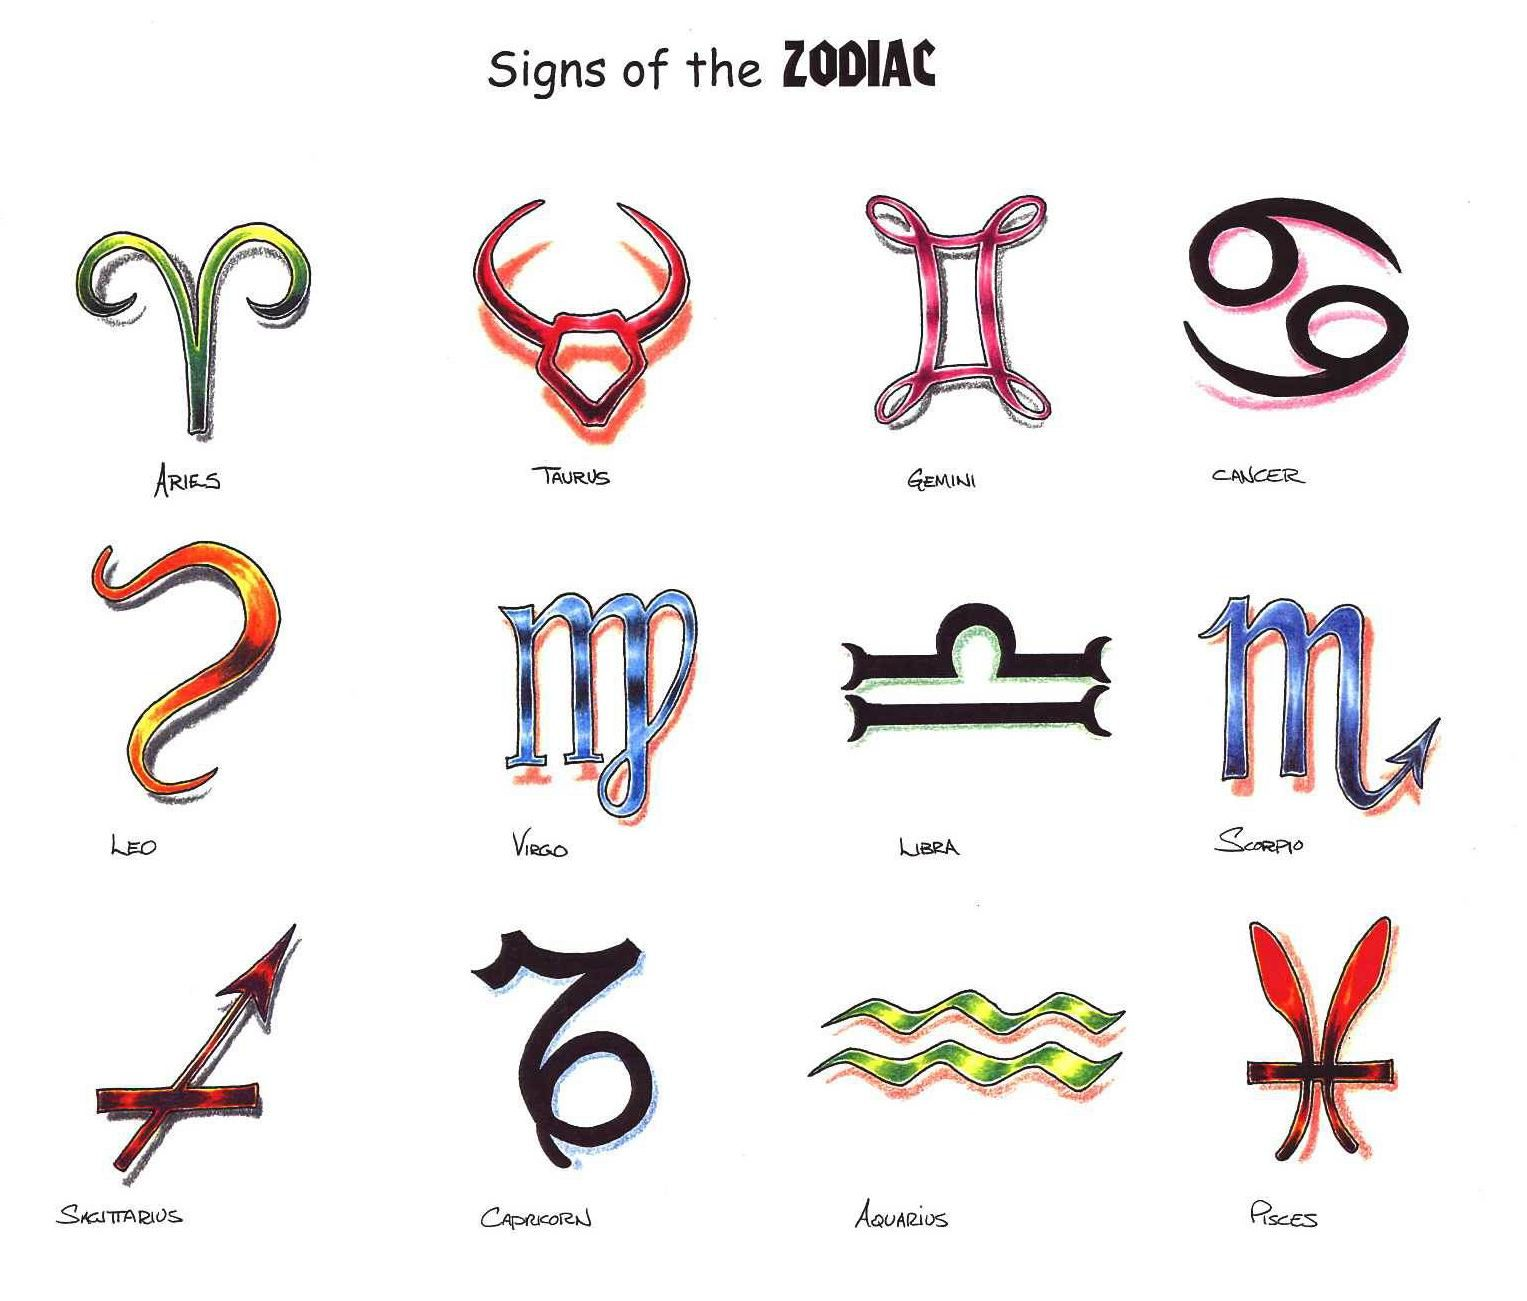 C pices p capricorn t scorpio find a way to incorporate the 3 zodiac symbol tattoos on zodiac tattoos types and designs articles web biocorpaavc Gallery